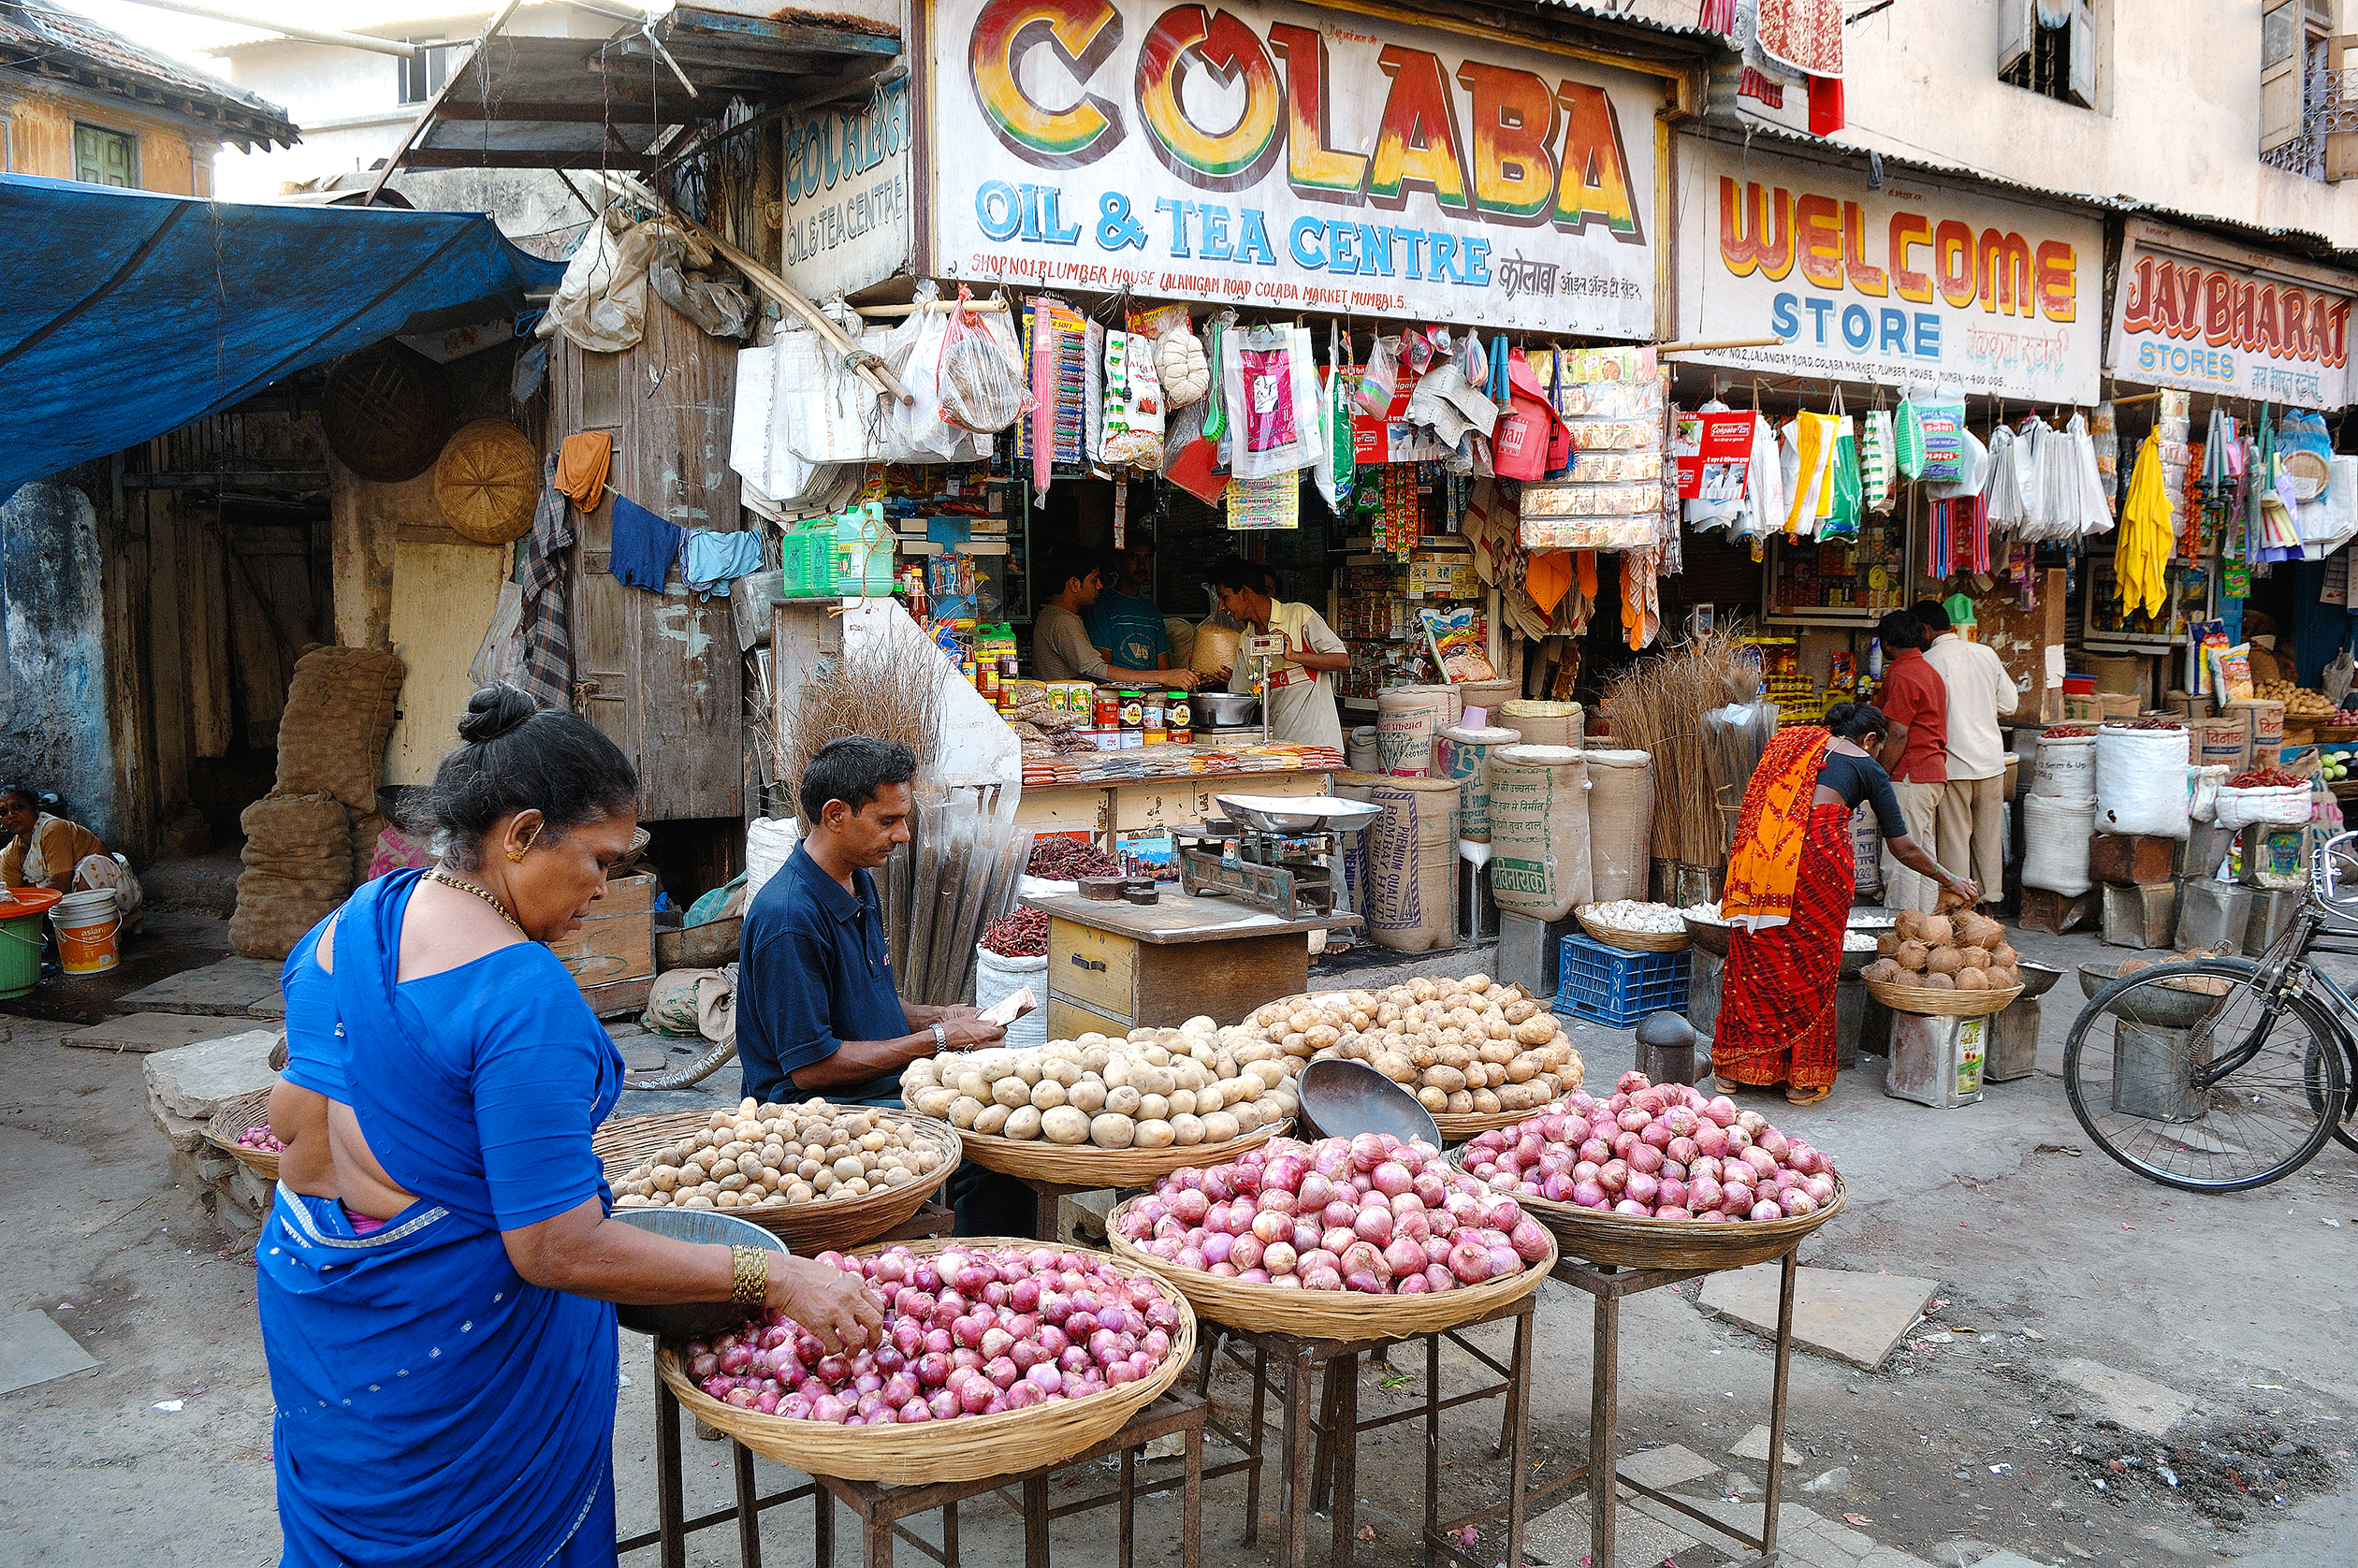 Shop for trinkets and treasures in the stalls at the Colaba Causeway.